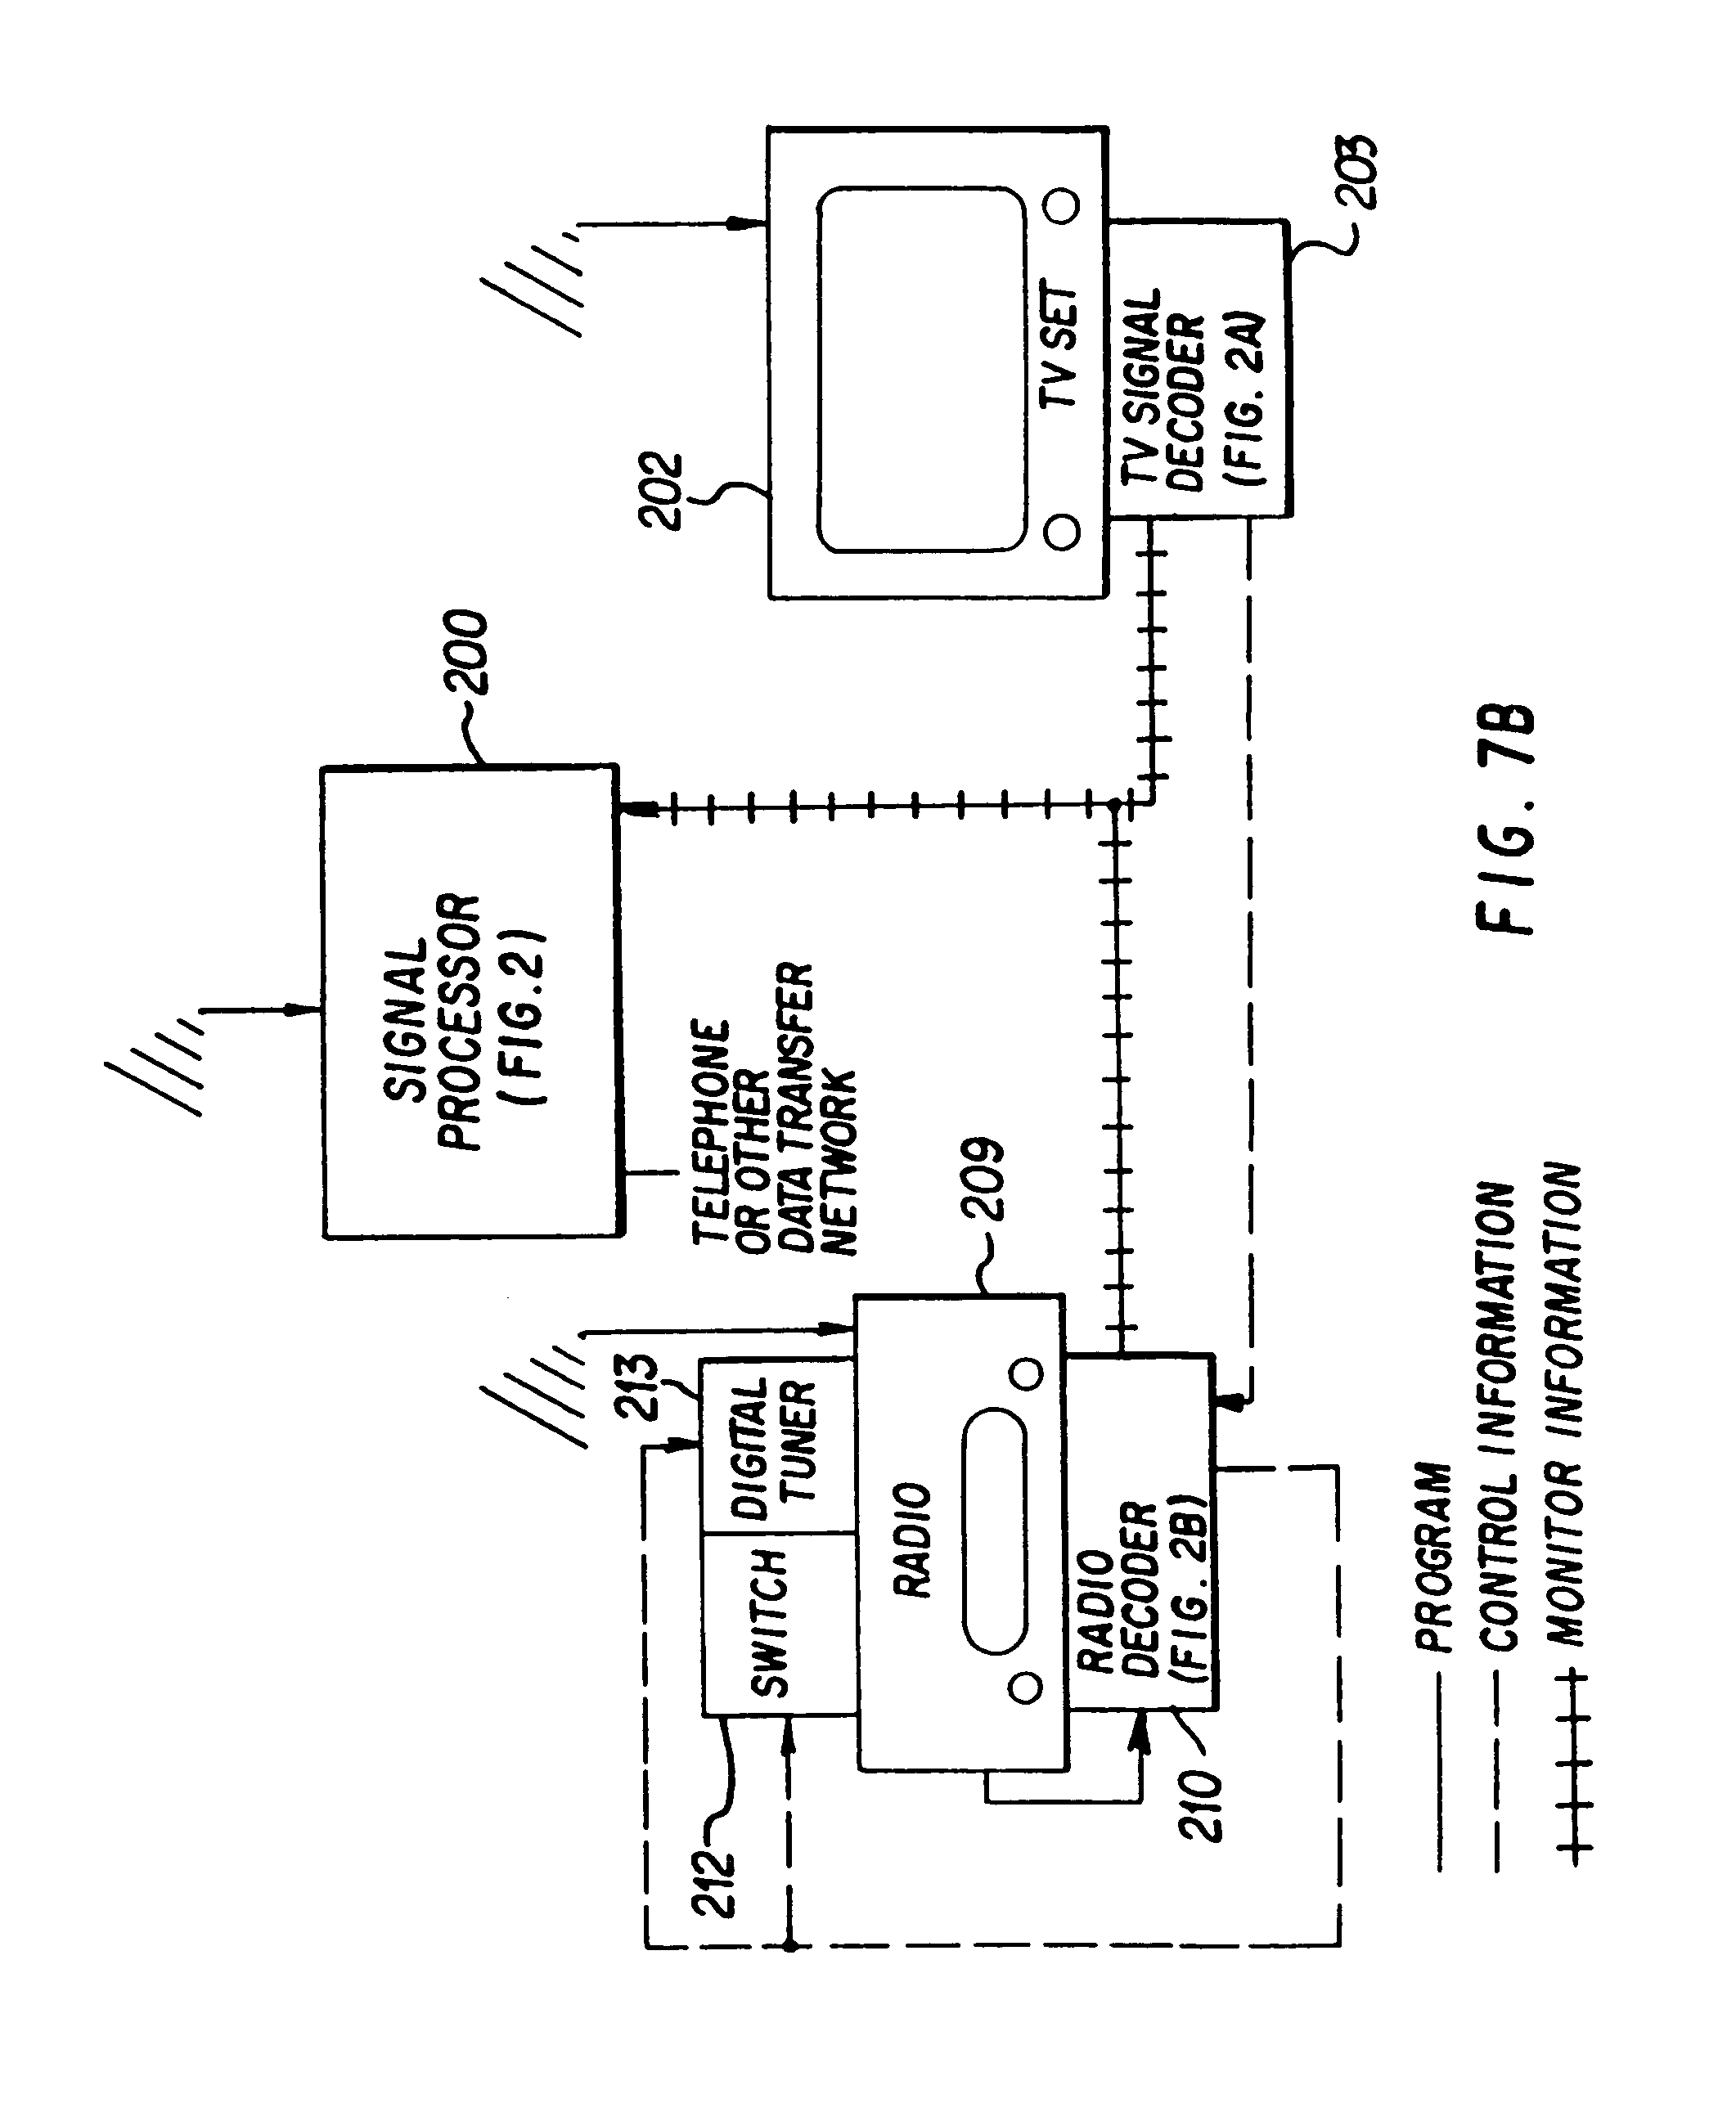 Us7958527b1 Signal Processing Apparatus And Methods Google Patents Scania 124 Wiring Diagram